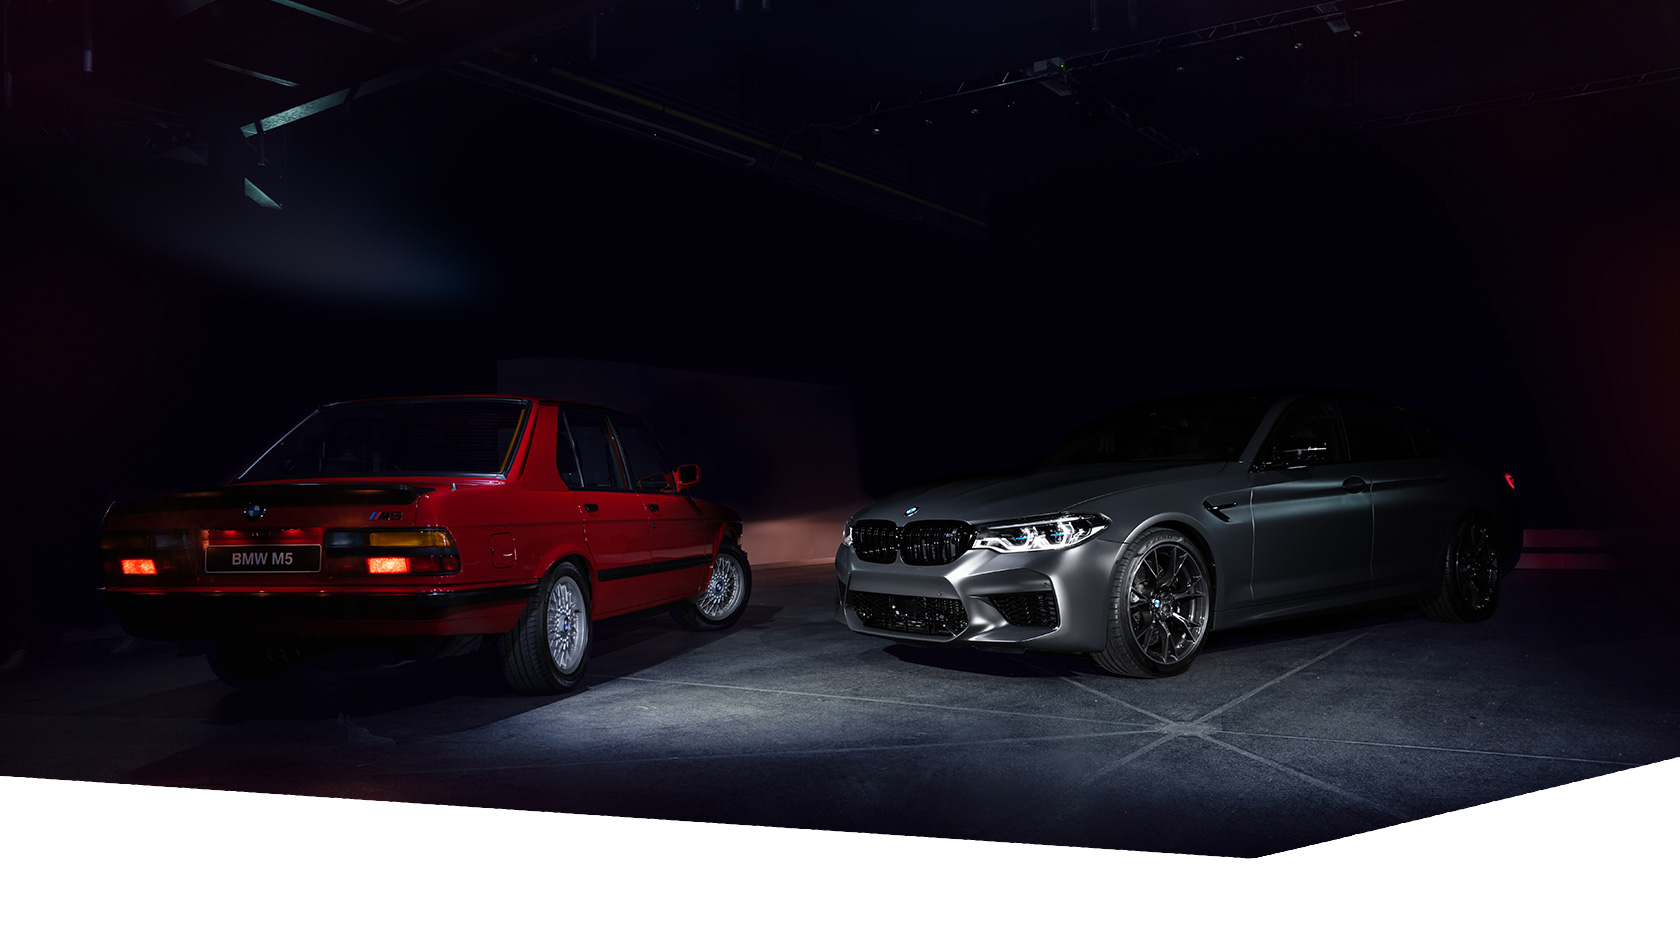 The Bmw M5 Edition 35 Jahre